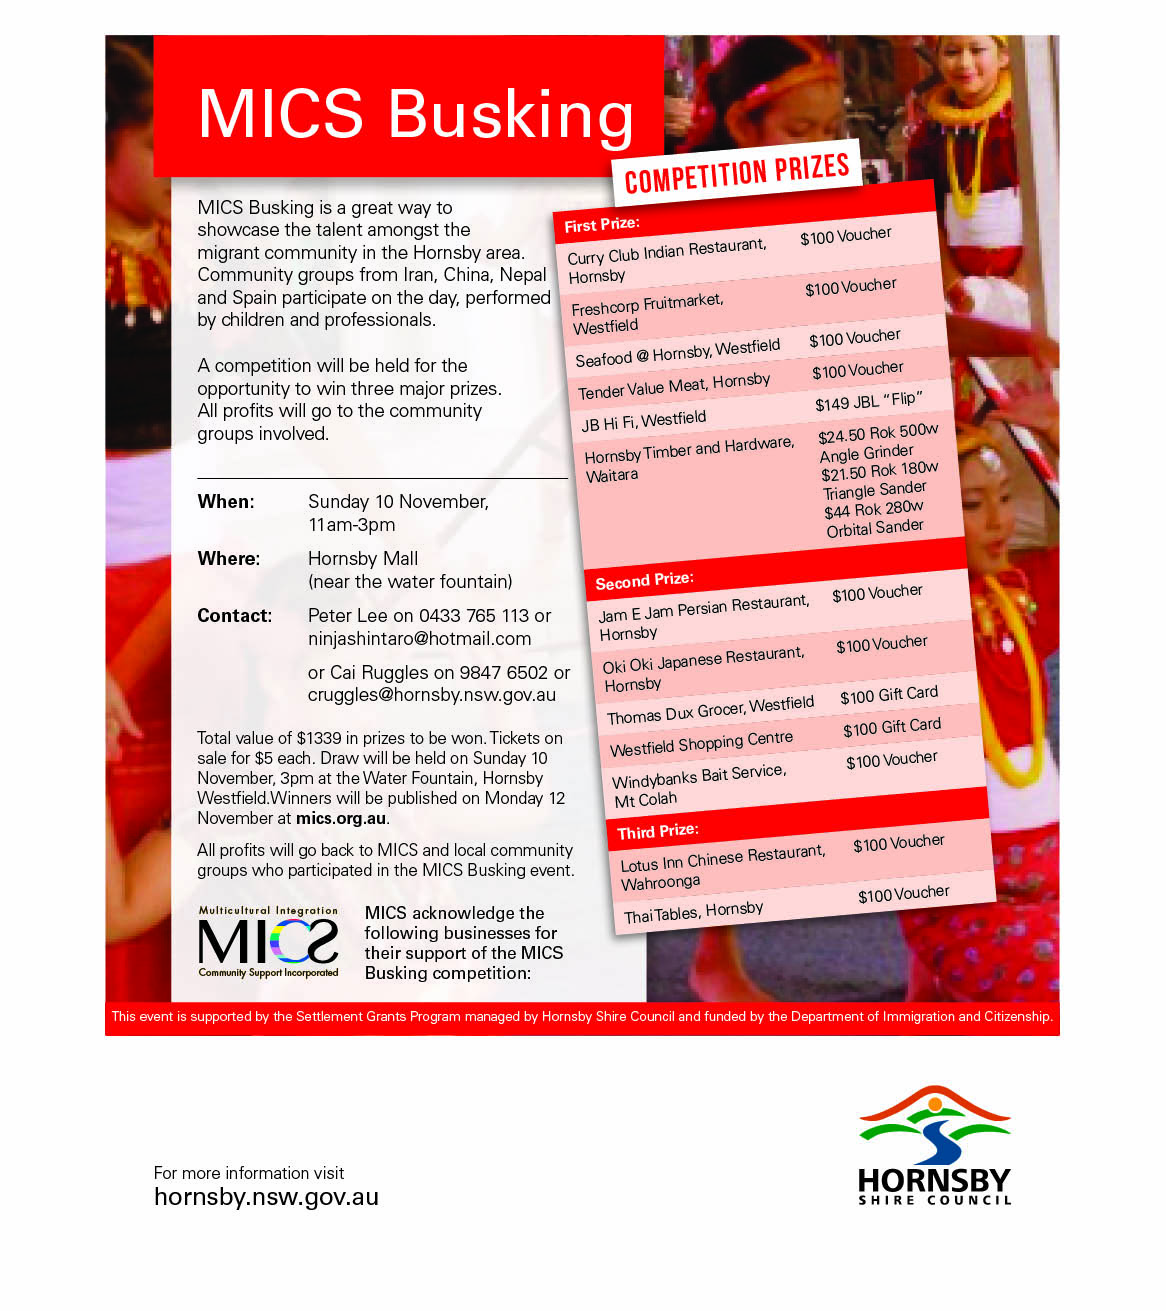 HSC00785 MICS Busking Email Flyer_FA